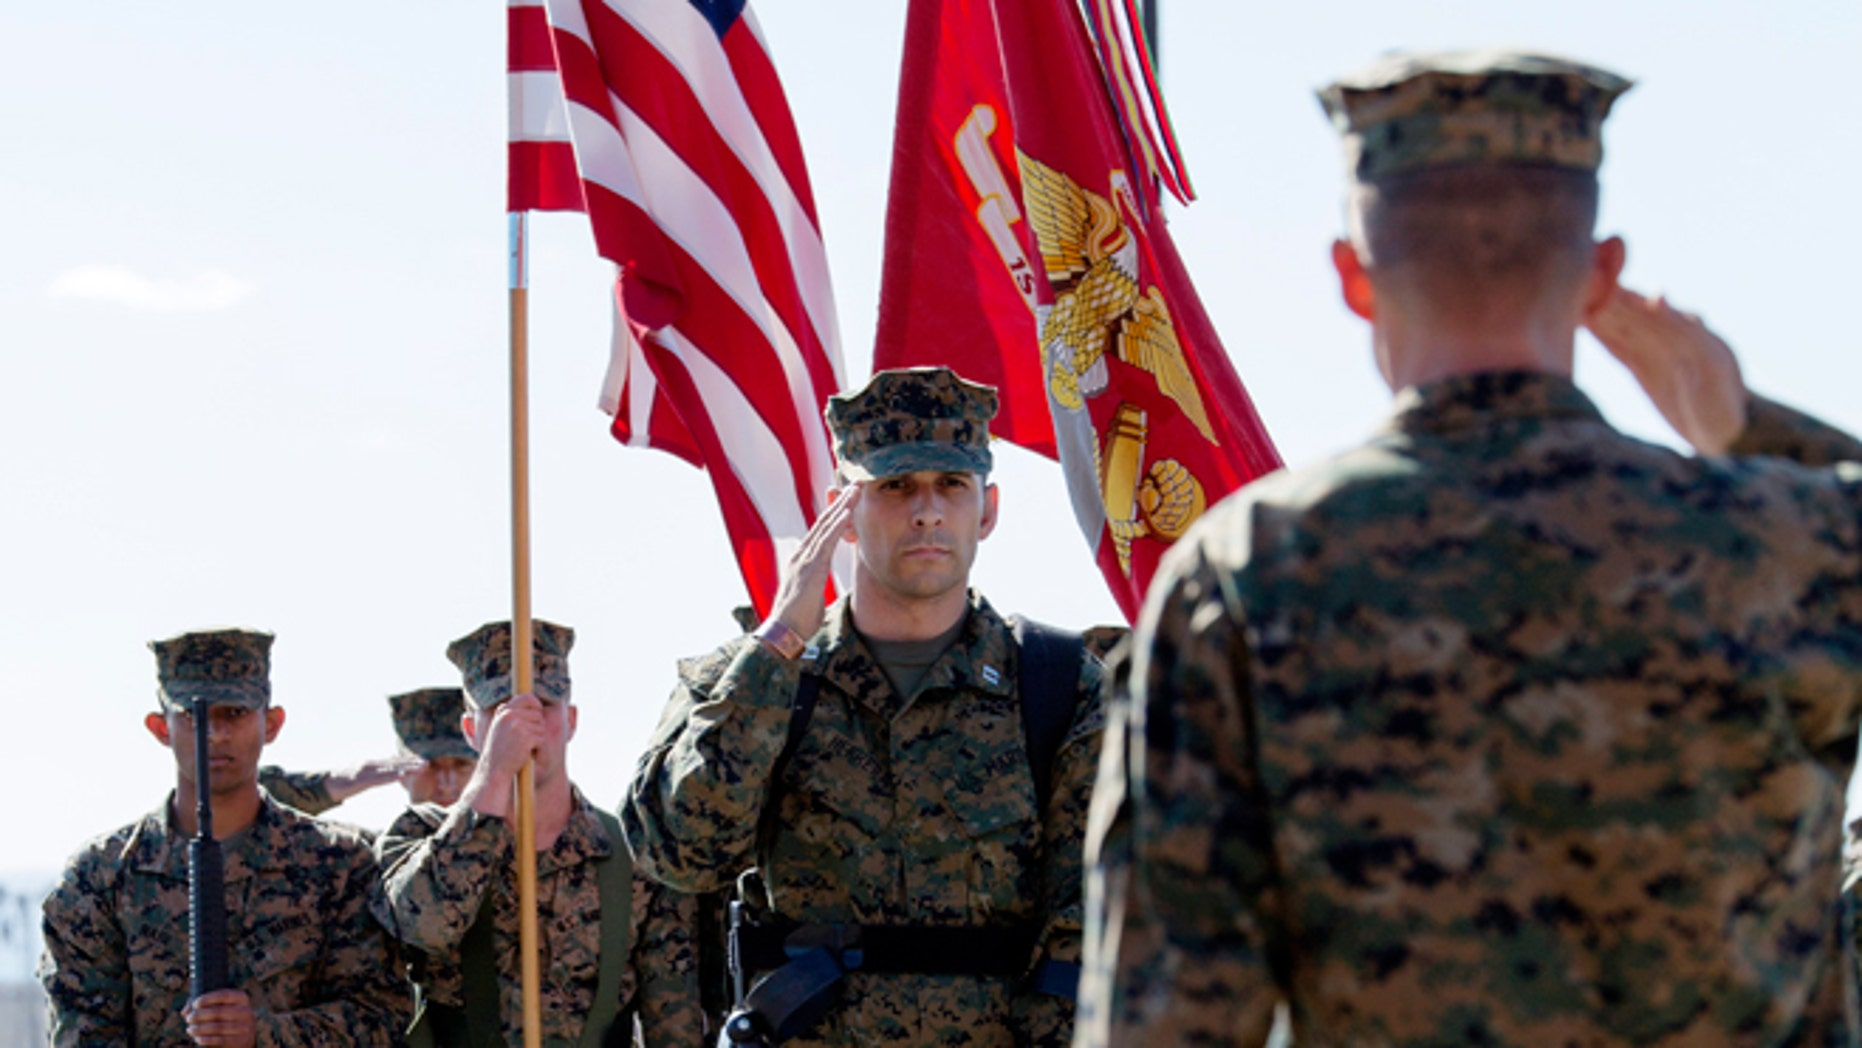 Nov. 21, 2014: In this photo provided by the U.S. Marines, U.S. Marine Capt. Derek Herrera, center, 1st Marine Special Operations Battalion, salutes during his awards and retirement ceremony at Camp Pendleton, Calif.